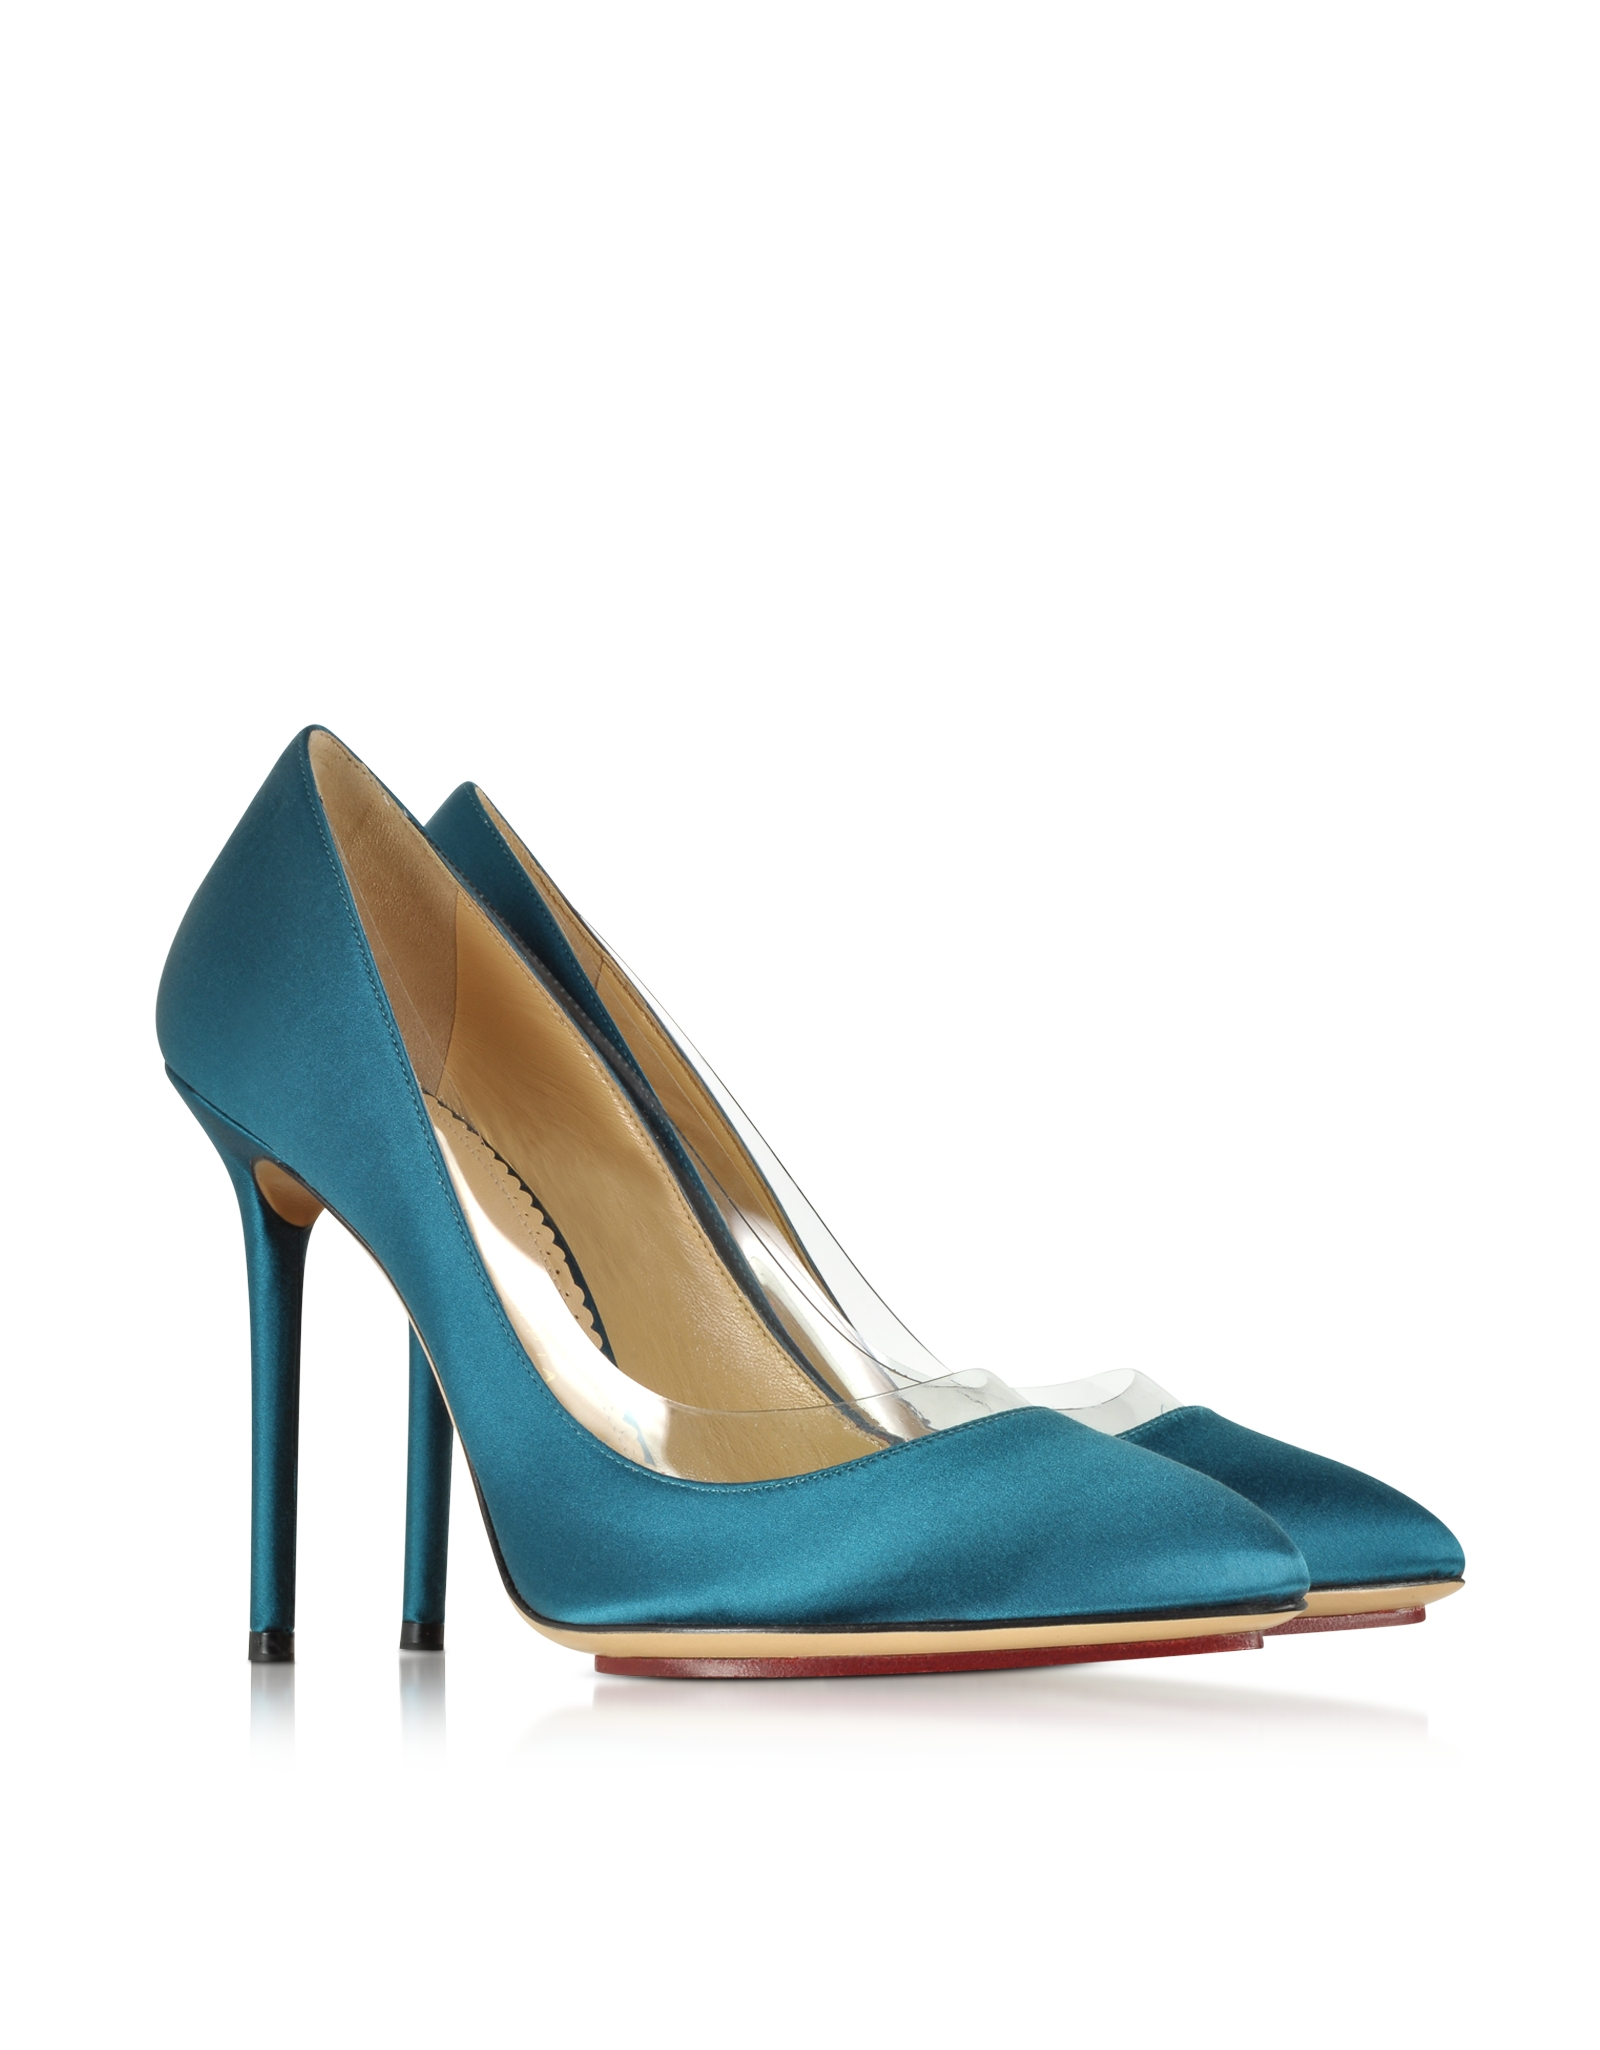 Charlotte Olympia Party Shoes 110 Teal Blue Satin Silk   Pvc Pump in ... 7471bbc19a54